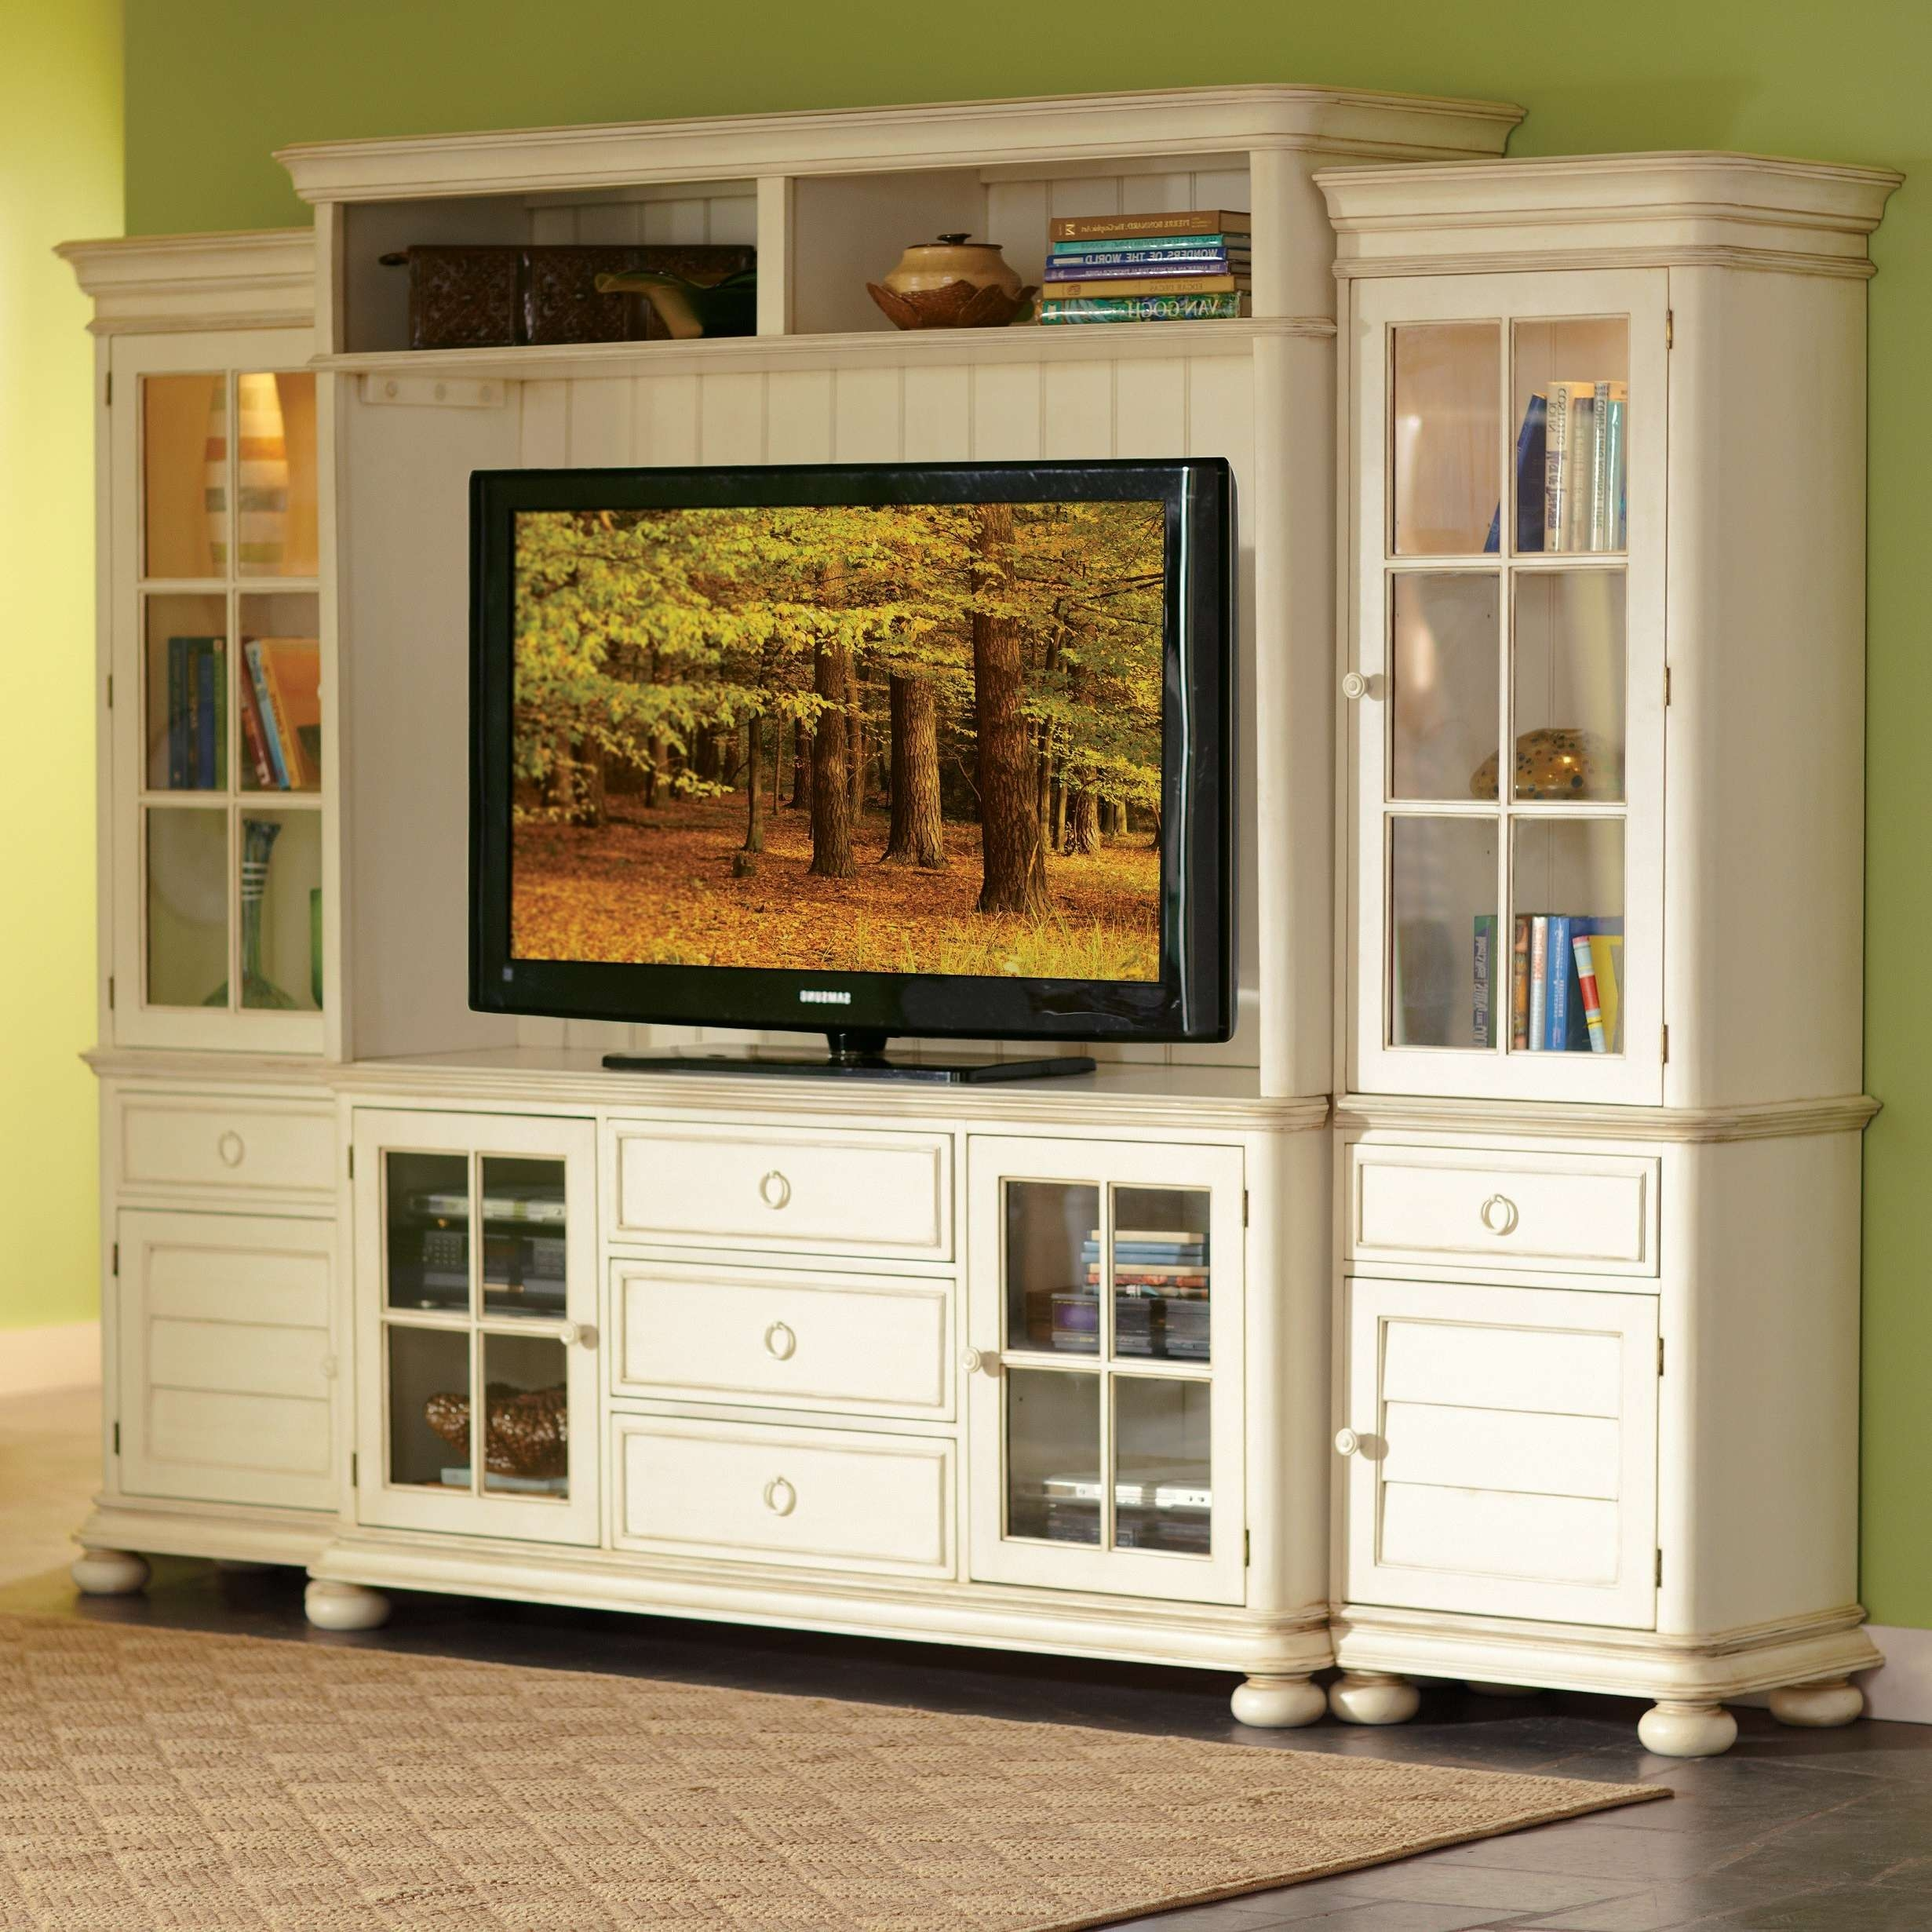 Charmant Vintage White Mahogany Wood Media Cabinet With Glass Doors Of In Enclosed  Tv Cabinets With Doors